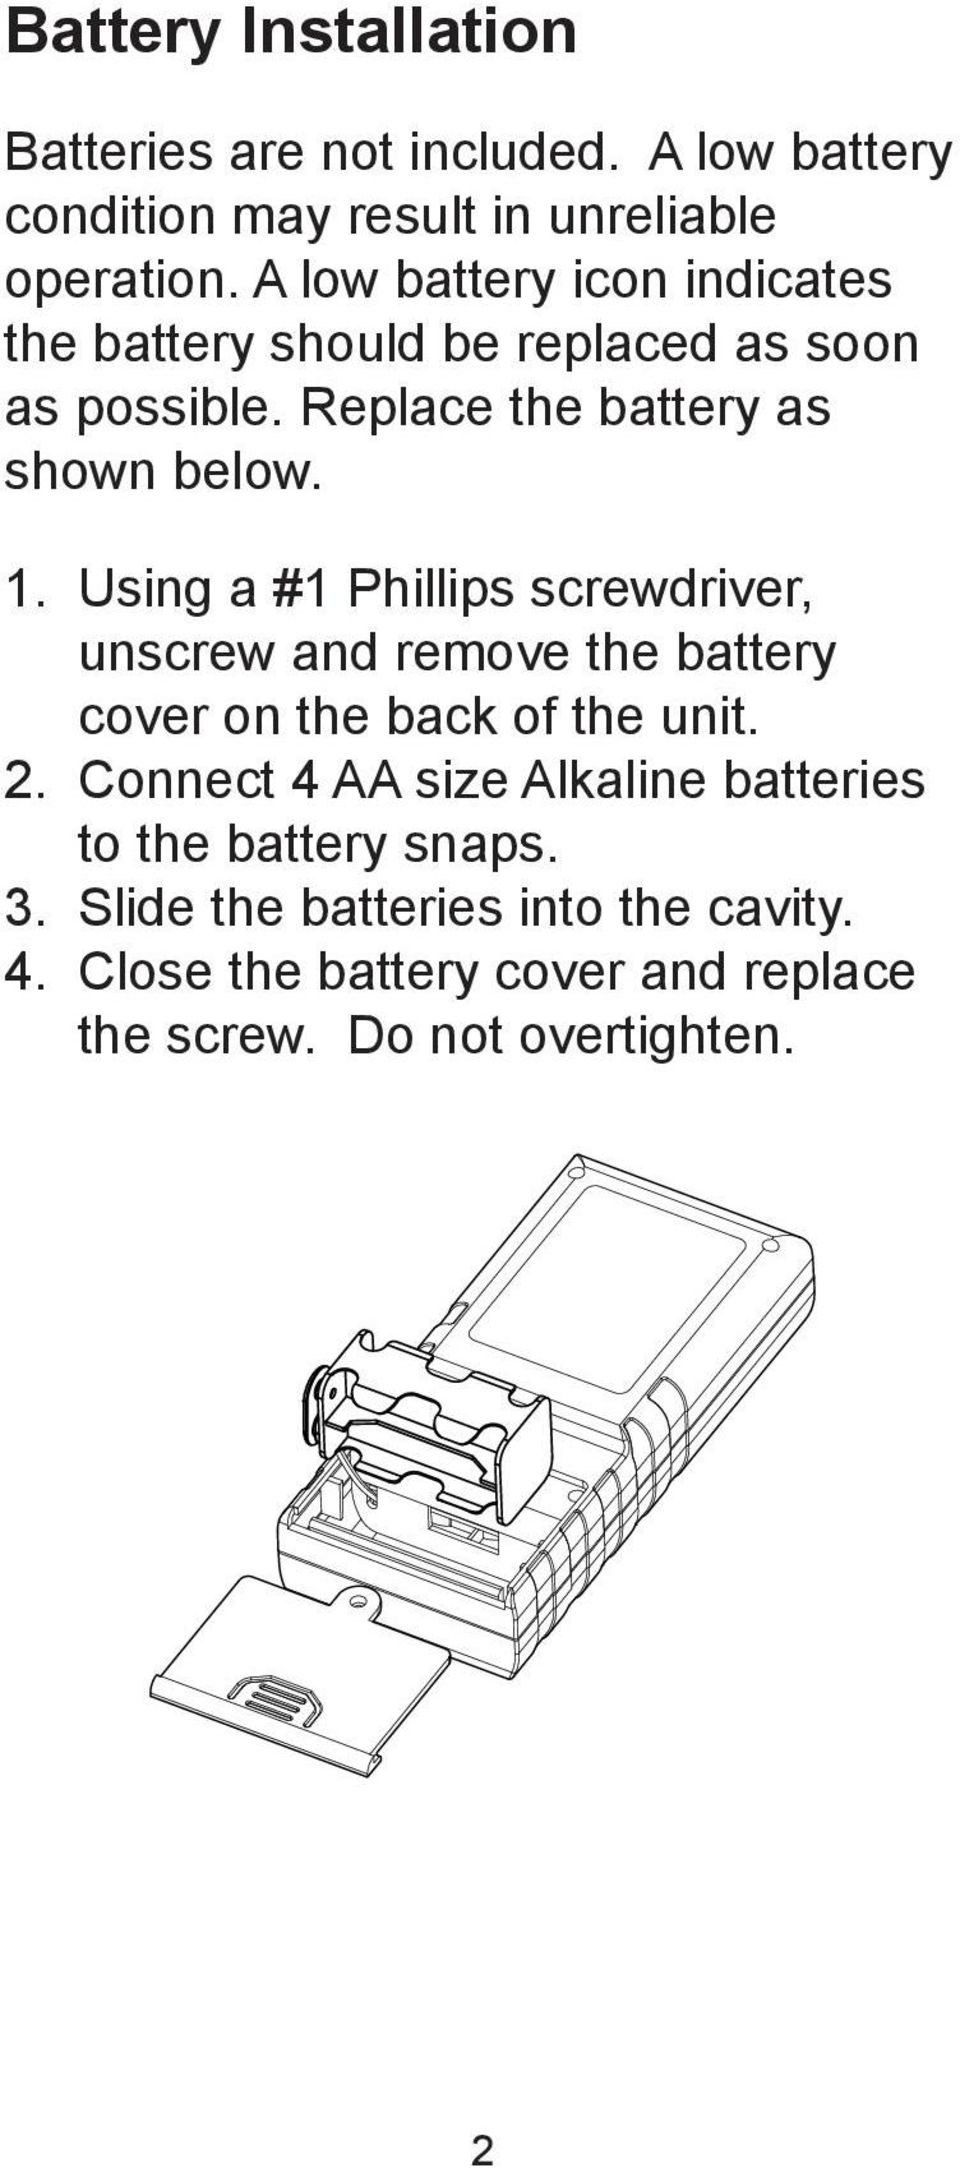 Using a #1 Phillips screwdriver, unscrew and remove the battery cover on the back of the unit. 2.